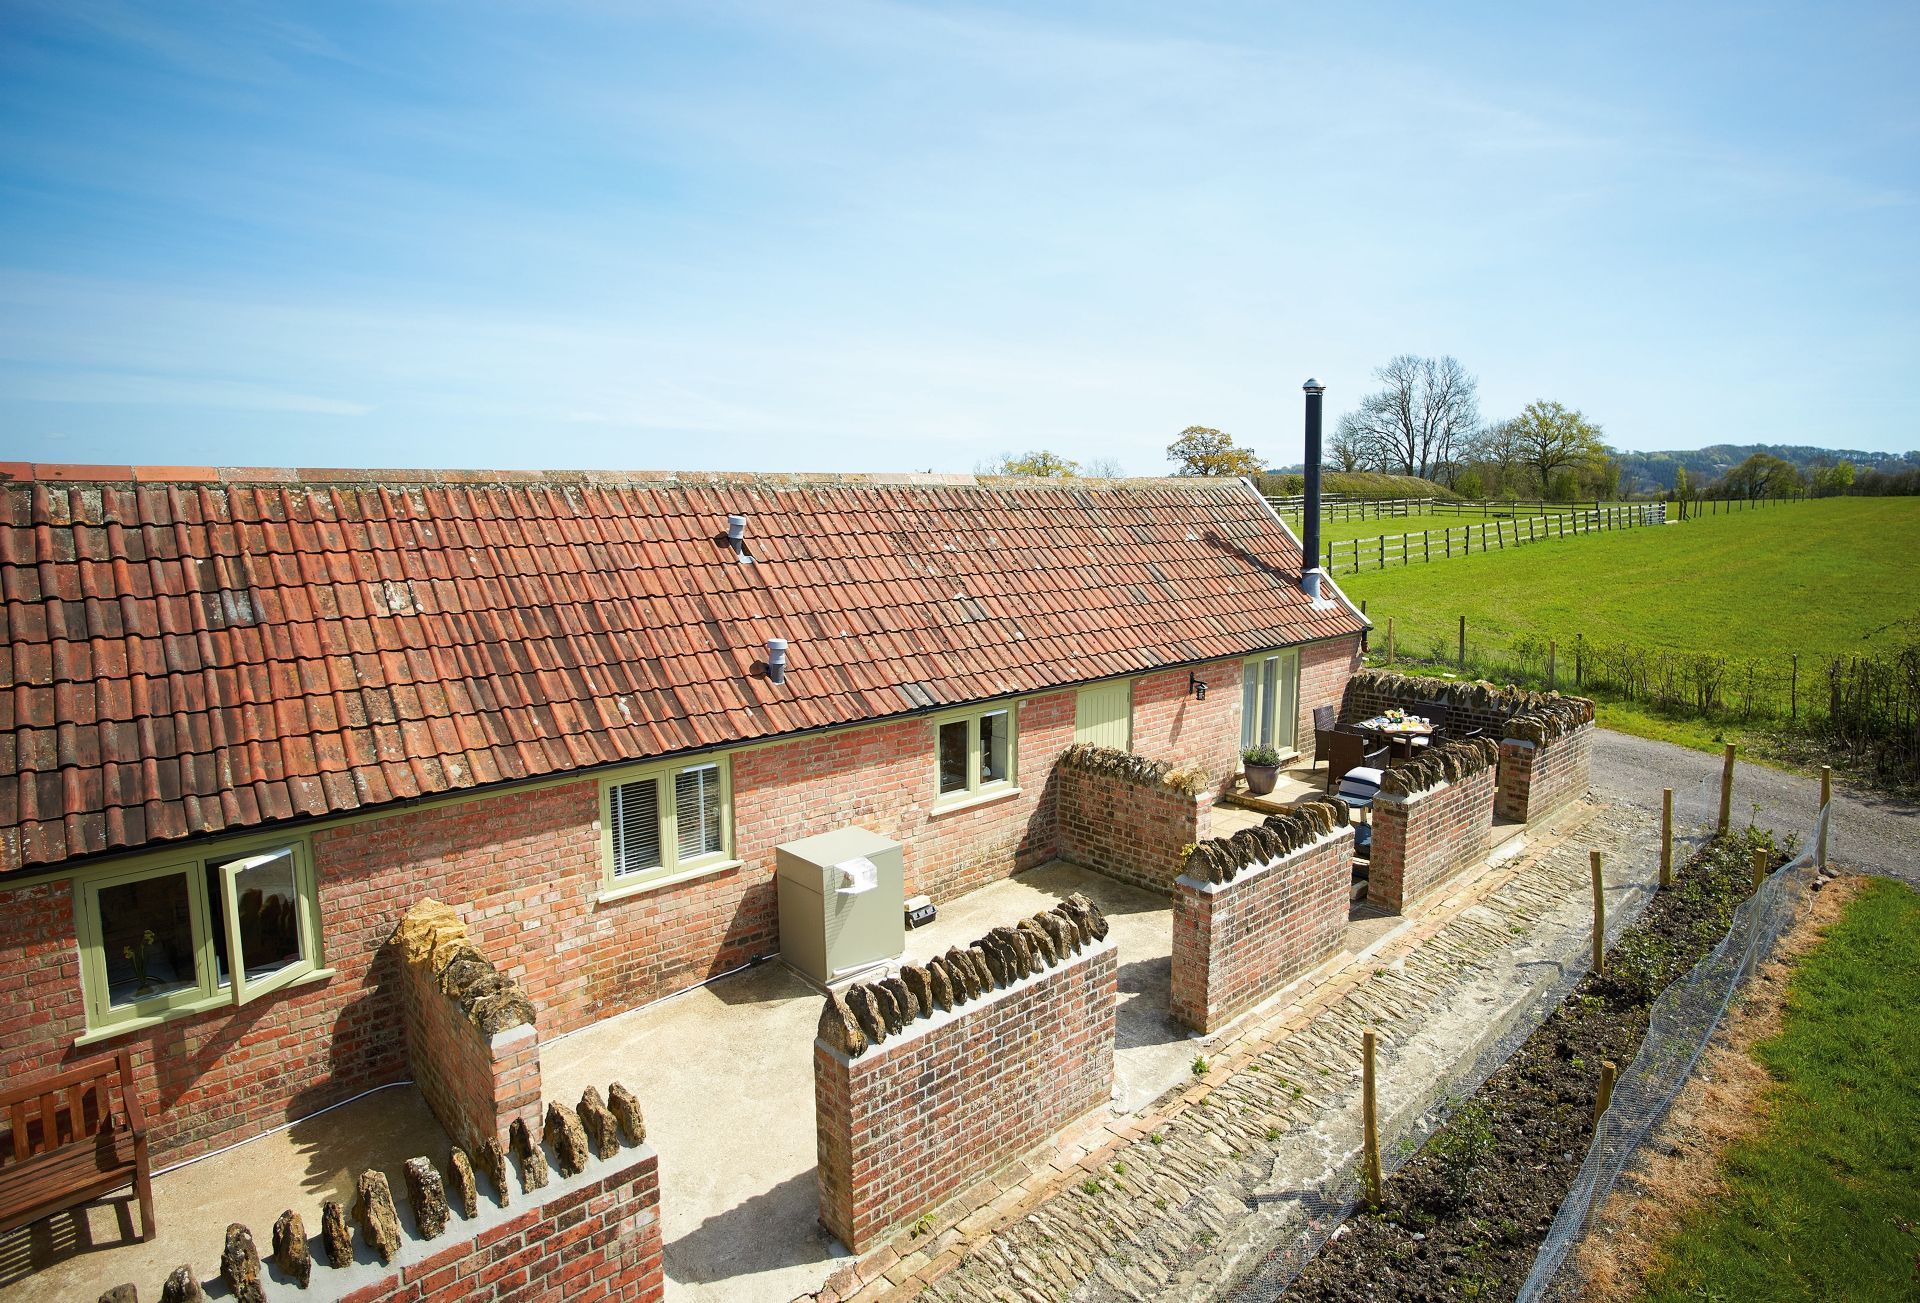 Downclose Piggeries is a delightful single story dwelling located along a quiet country lane